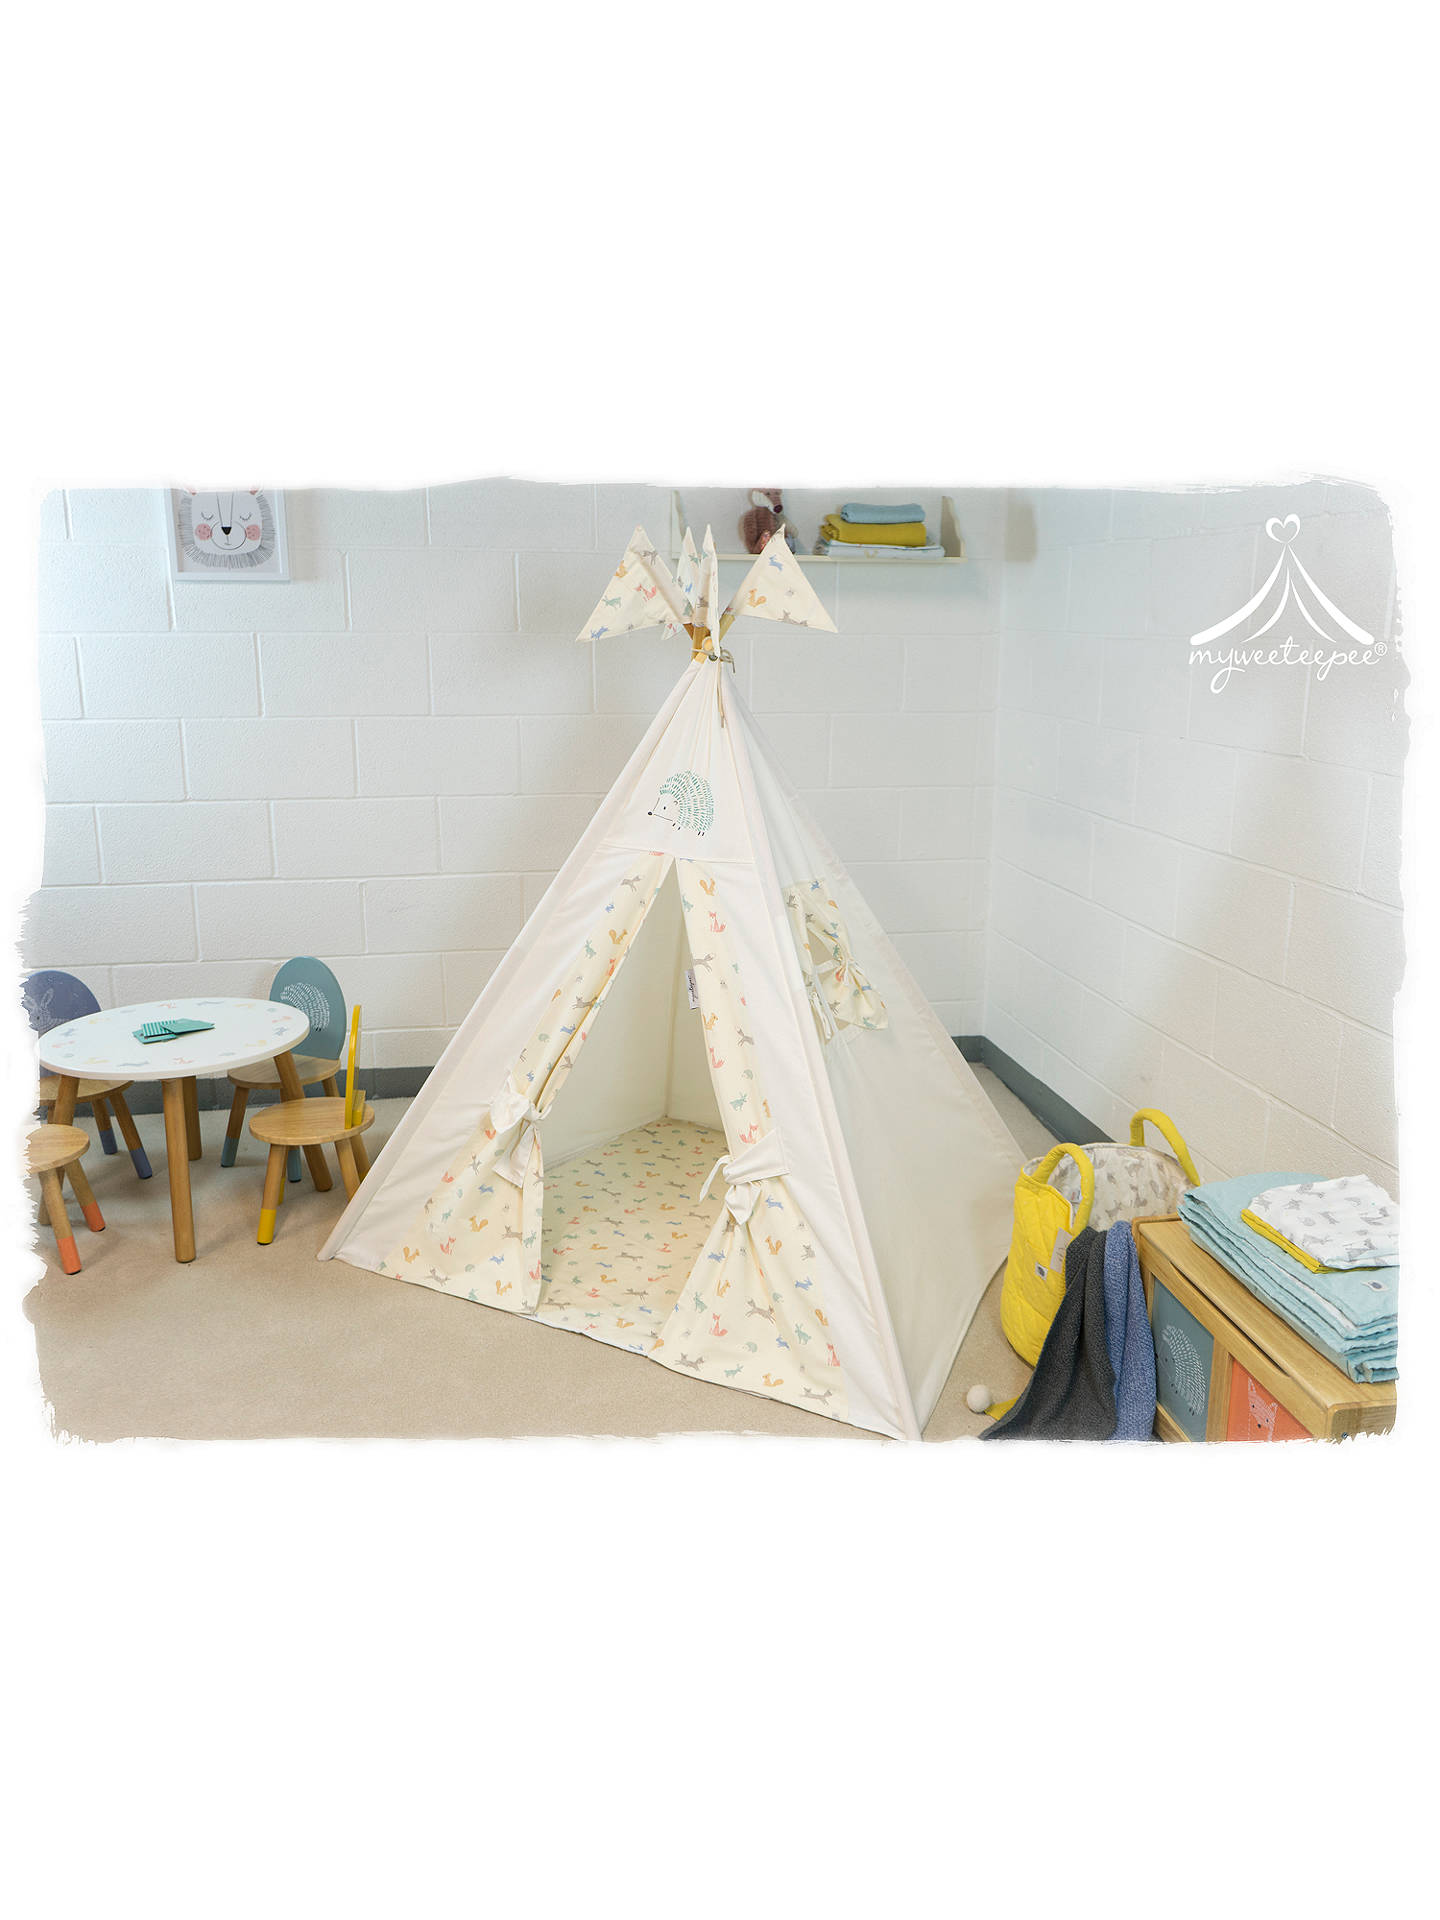 BuyMyweeteepee Forest Friends Teepee Online at johnlewis.com